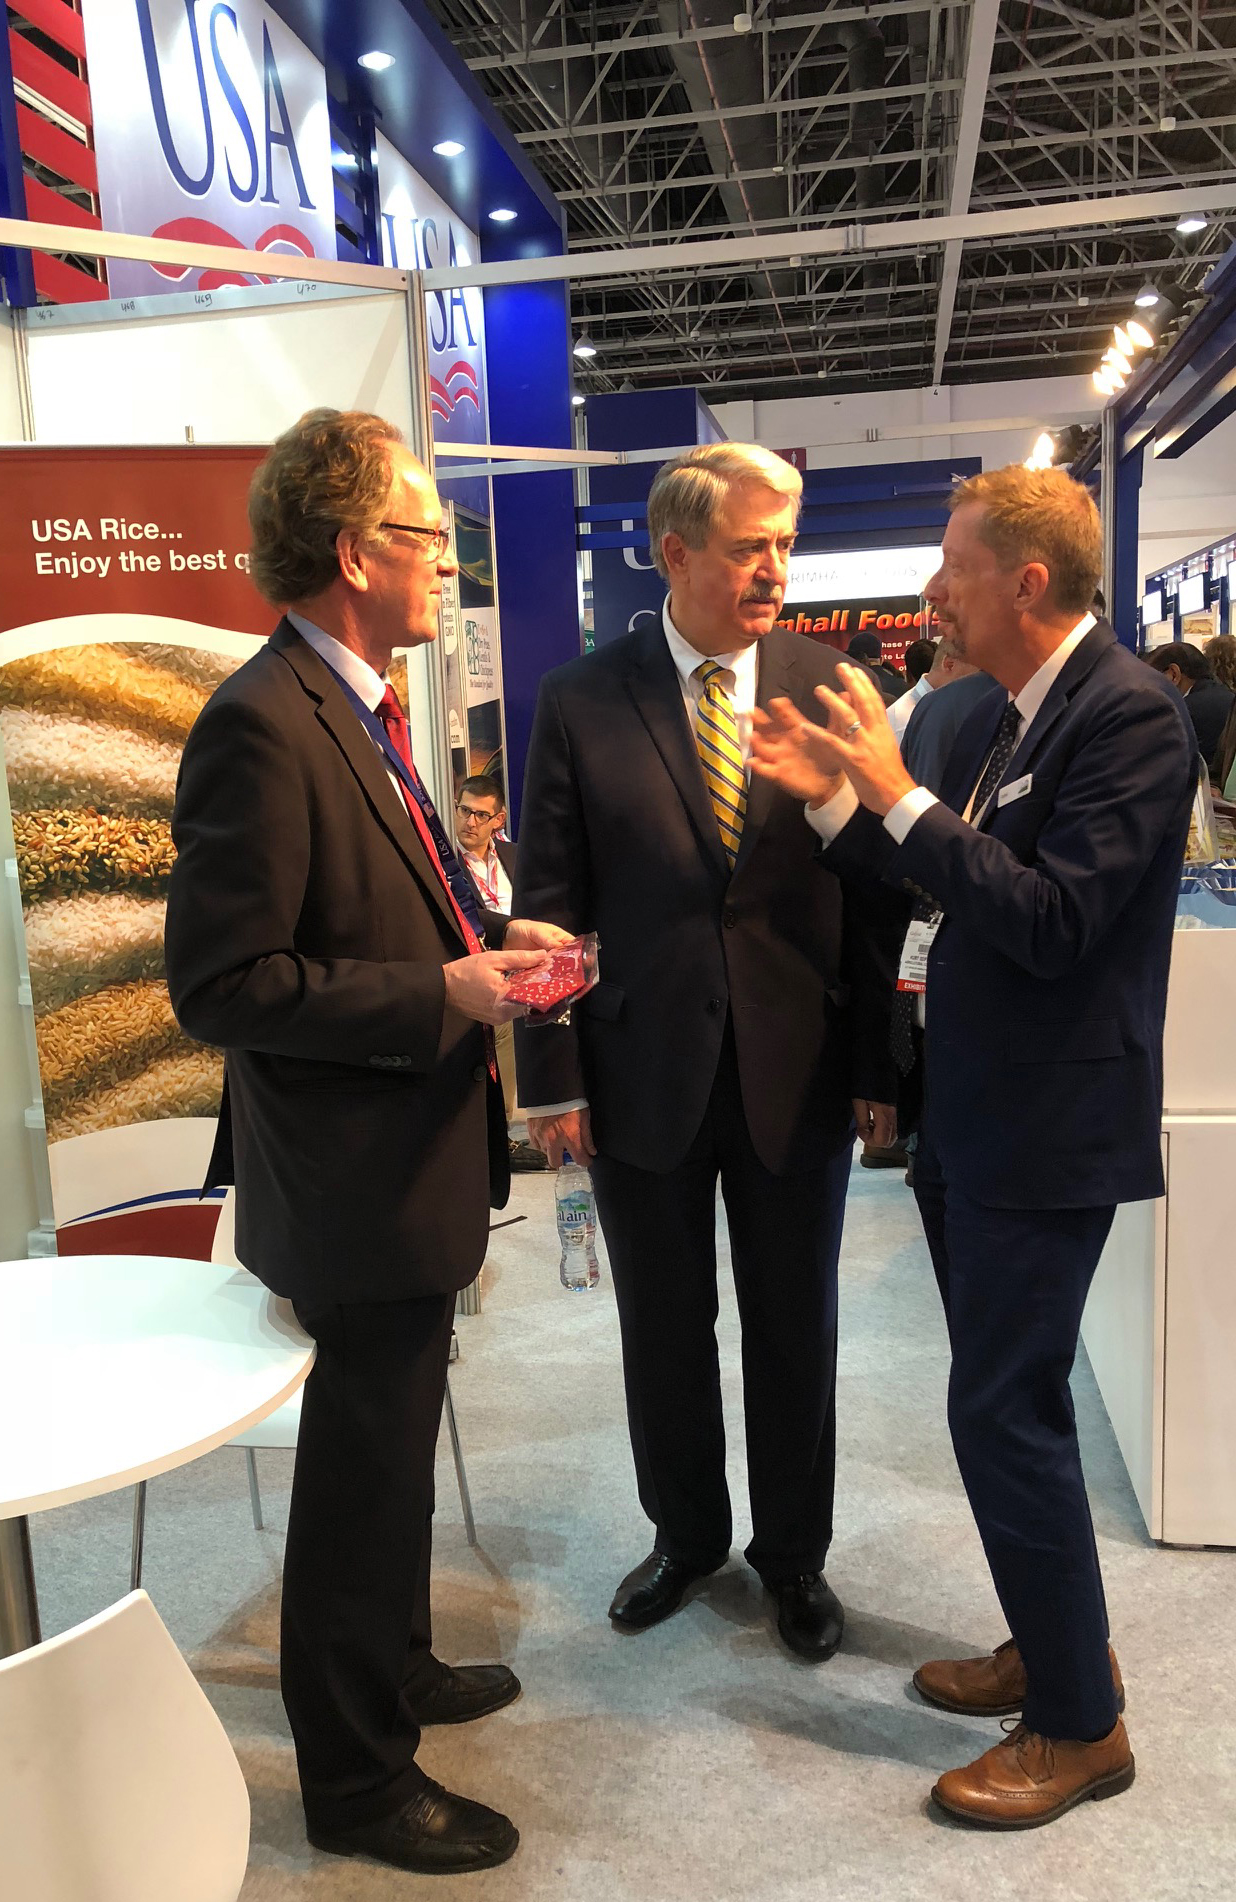 Undersecretary McKinney at USA Rice booth at Gulfood Show 2018, three men standing together talking in exhibit hall